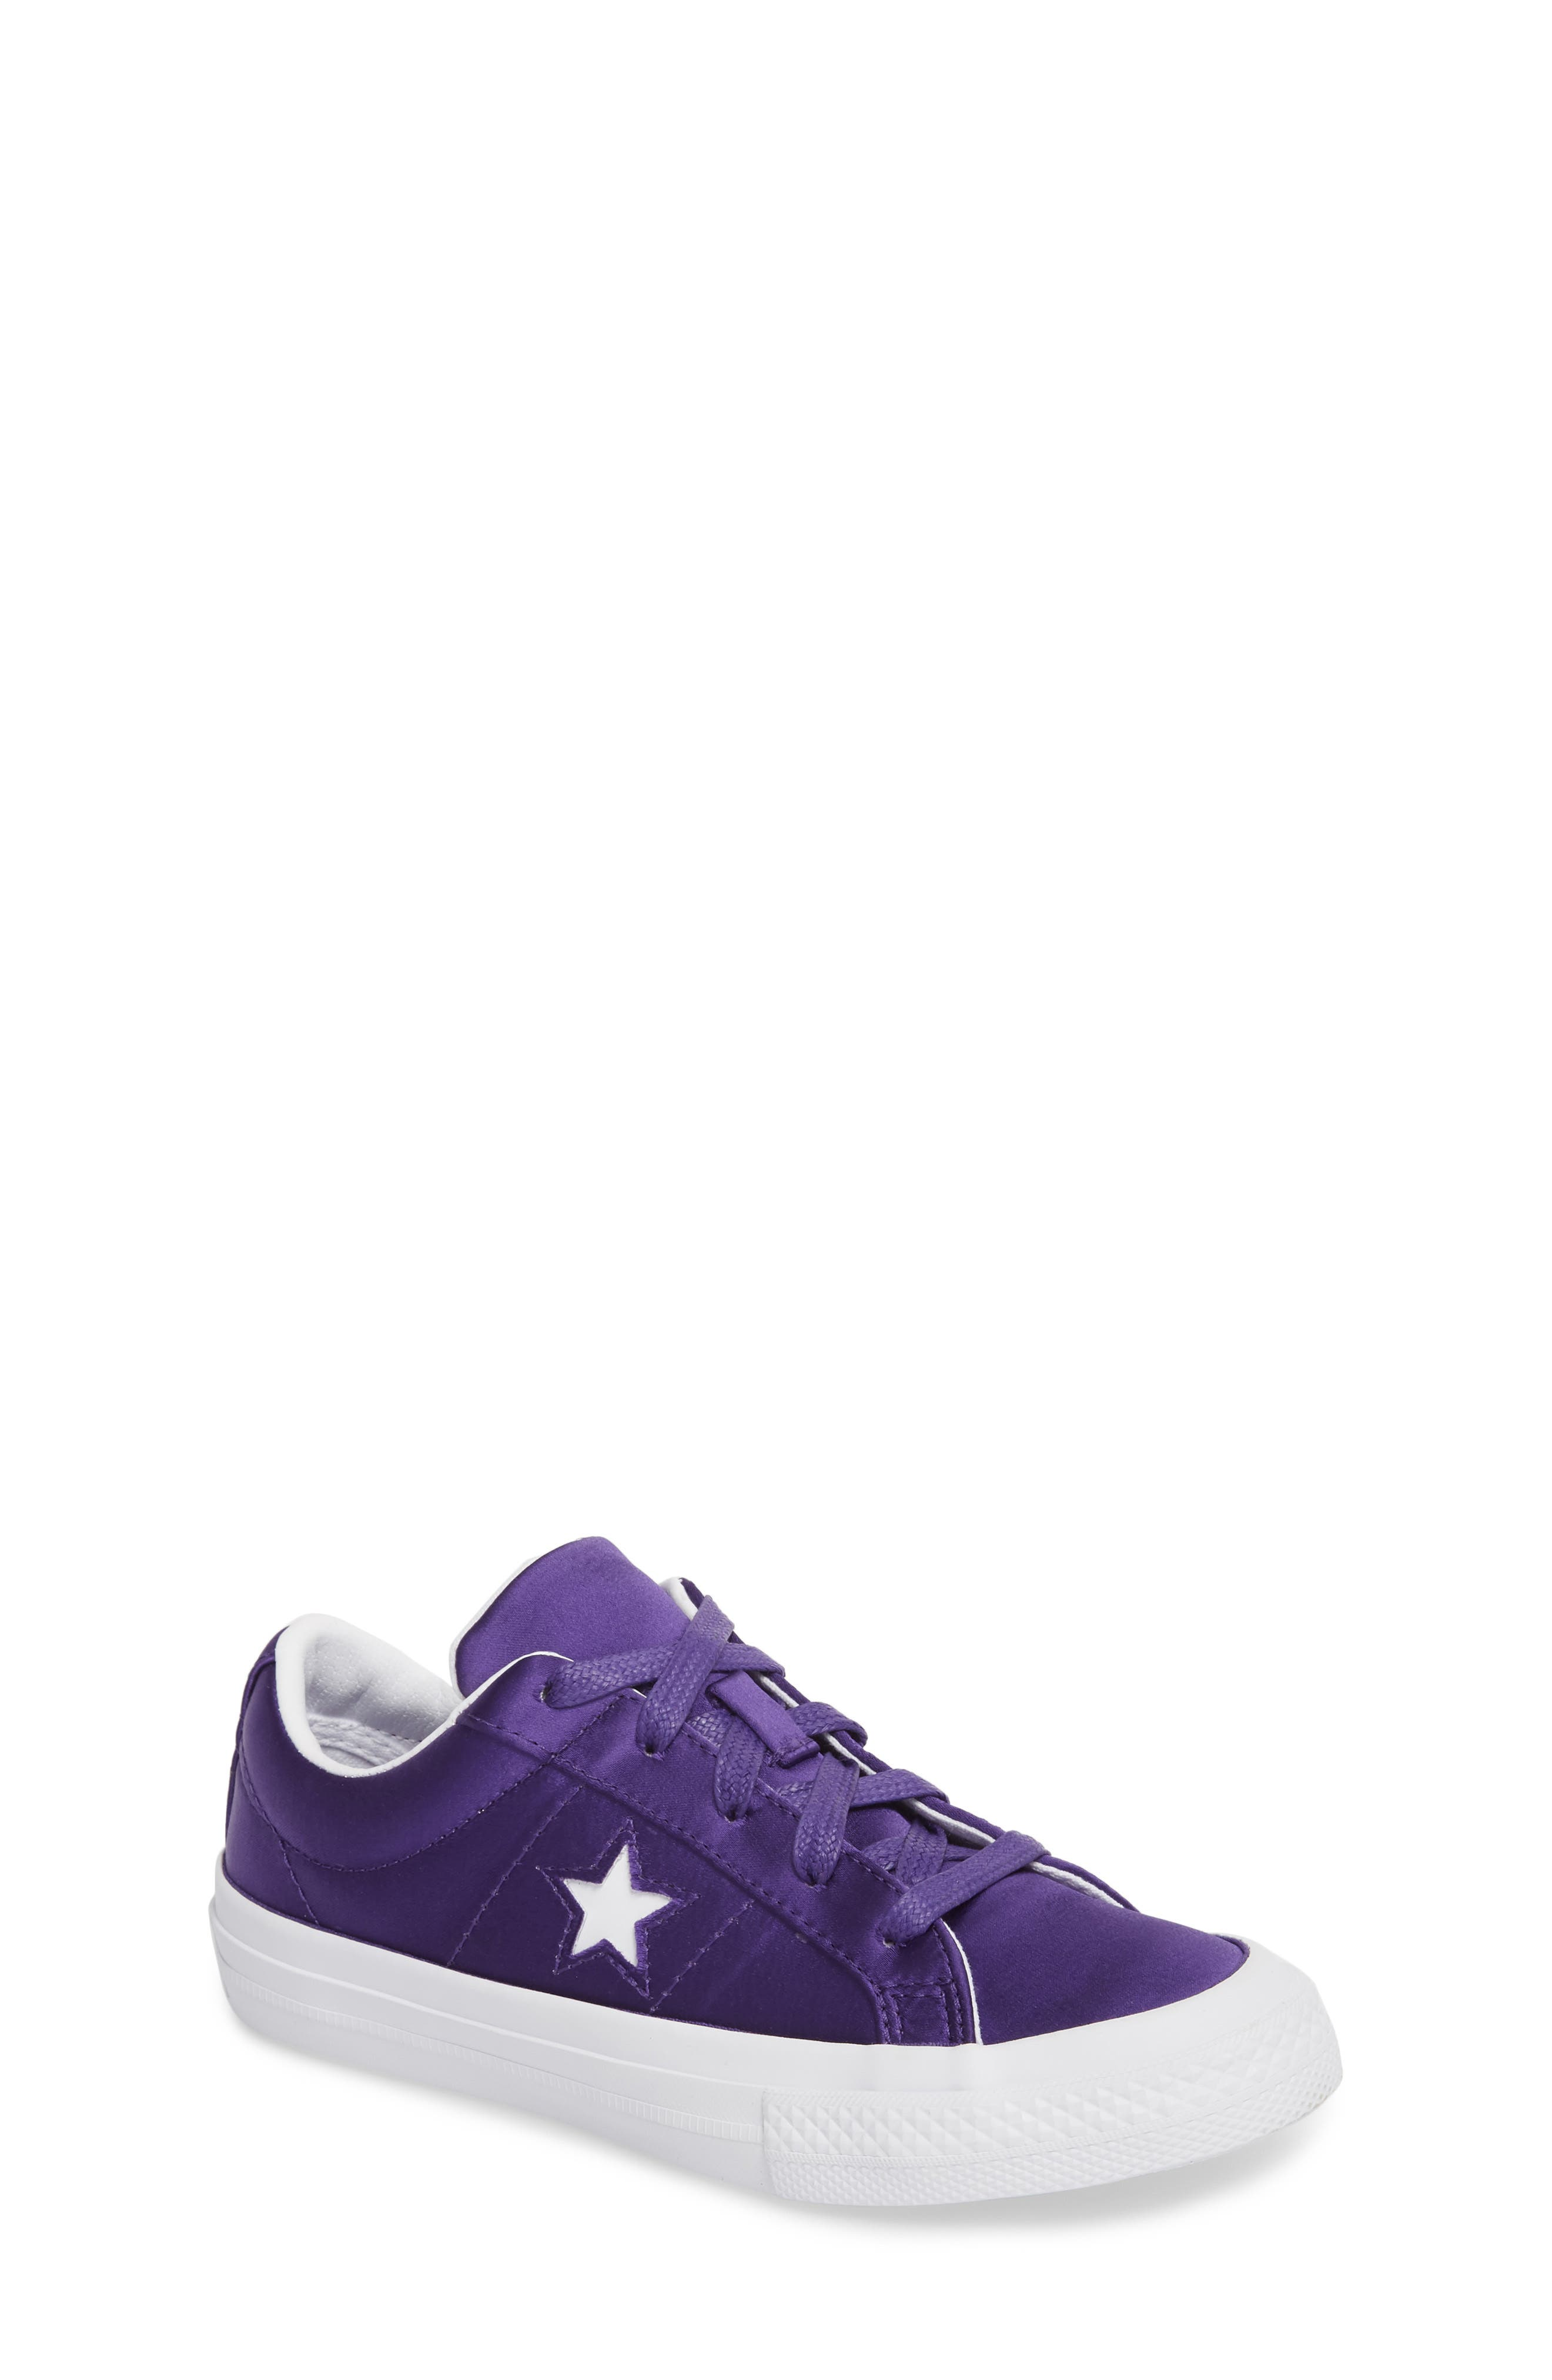 Chuck Taylor<sup>®</sup> All Star<sup>®</sup> One Star Satin Low Top Sneaker,                             Main thumbnail 1, color,                             510